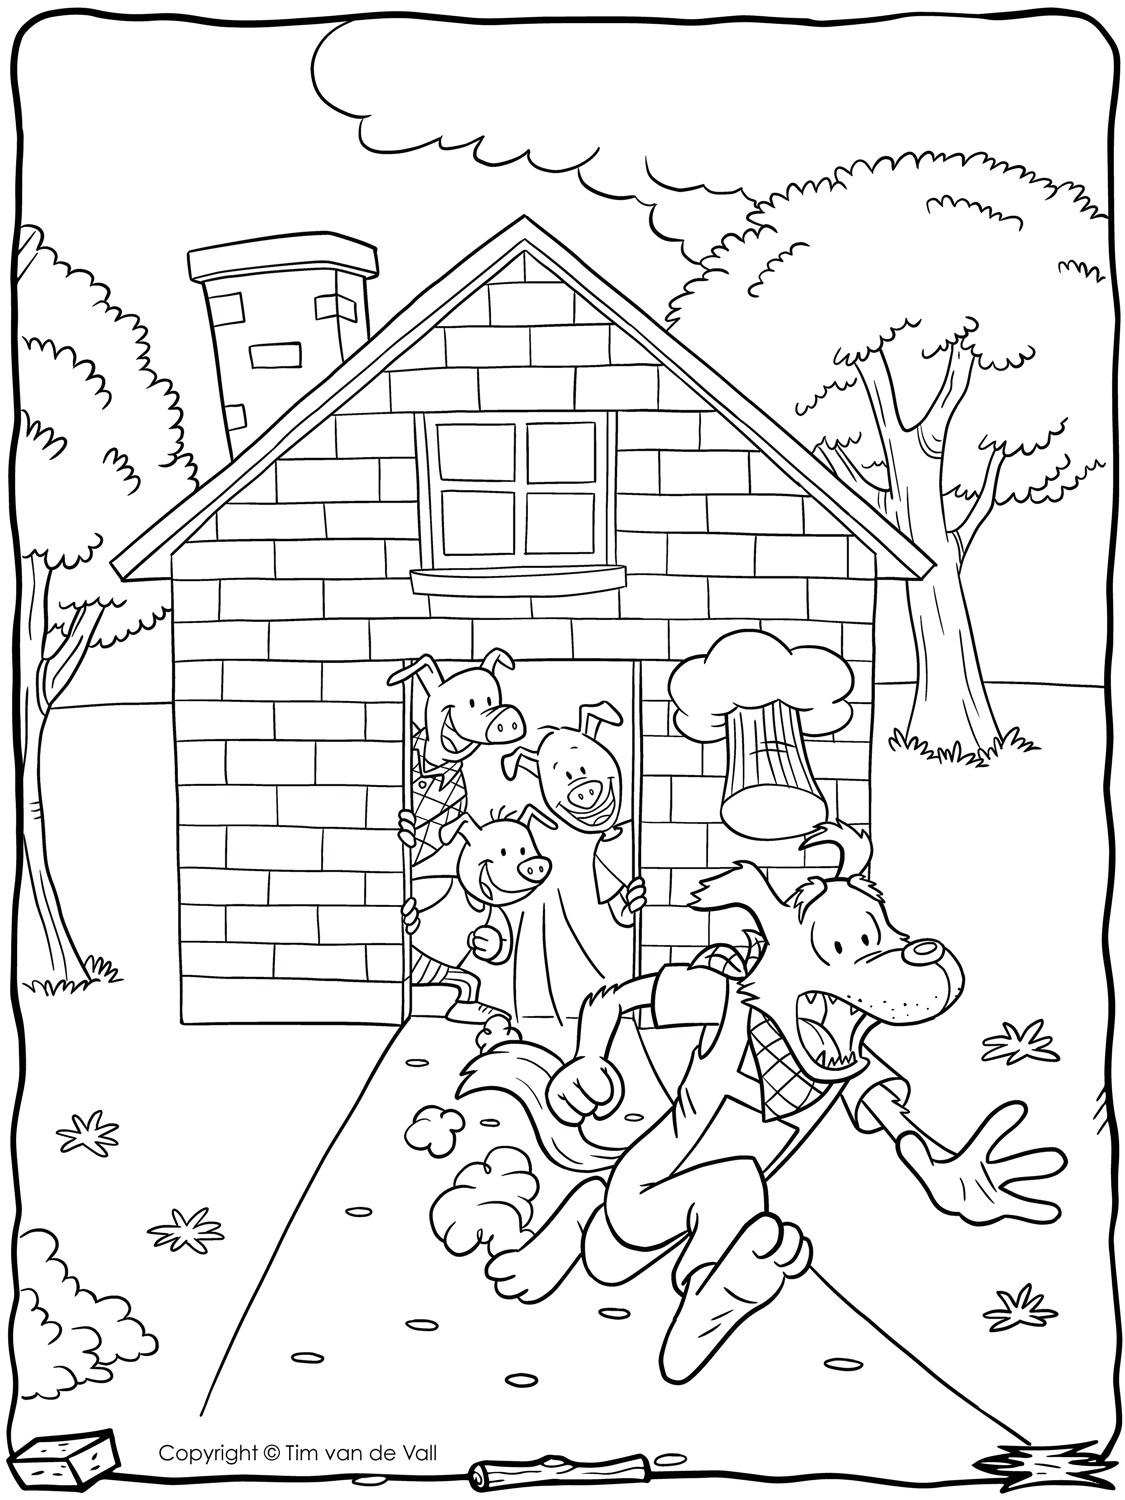 Three Little Pigs Coloring Page - Tim\'s Printables